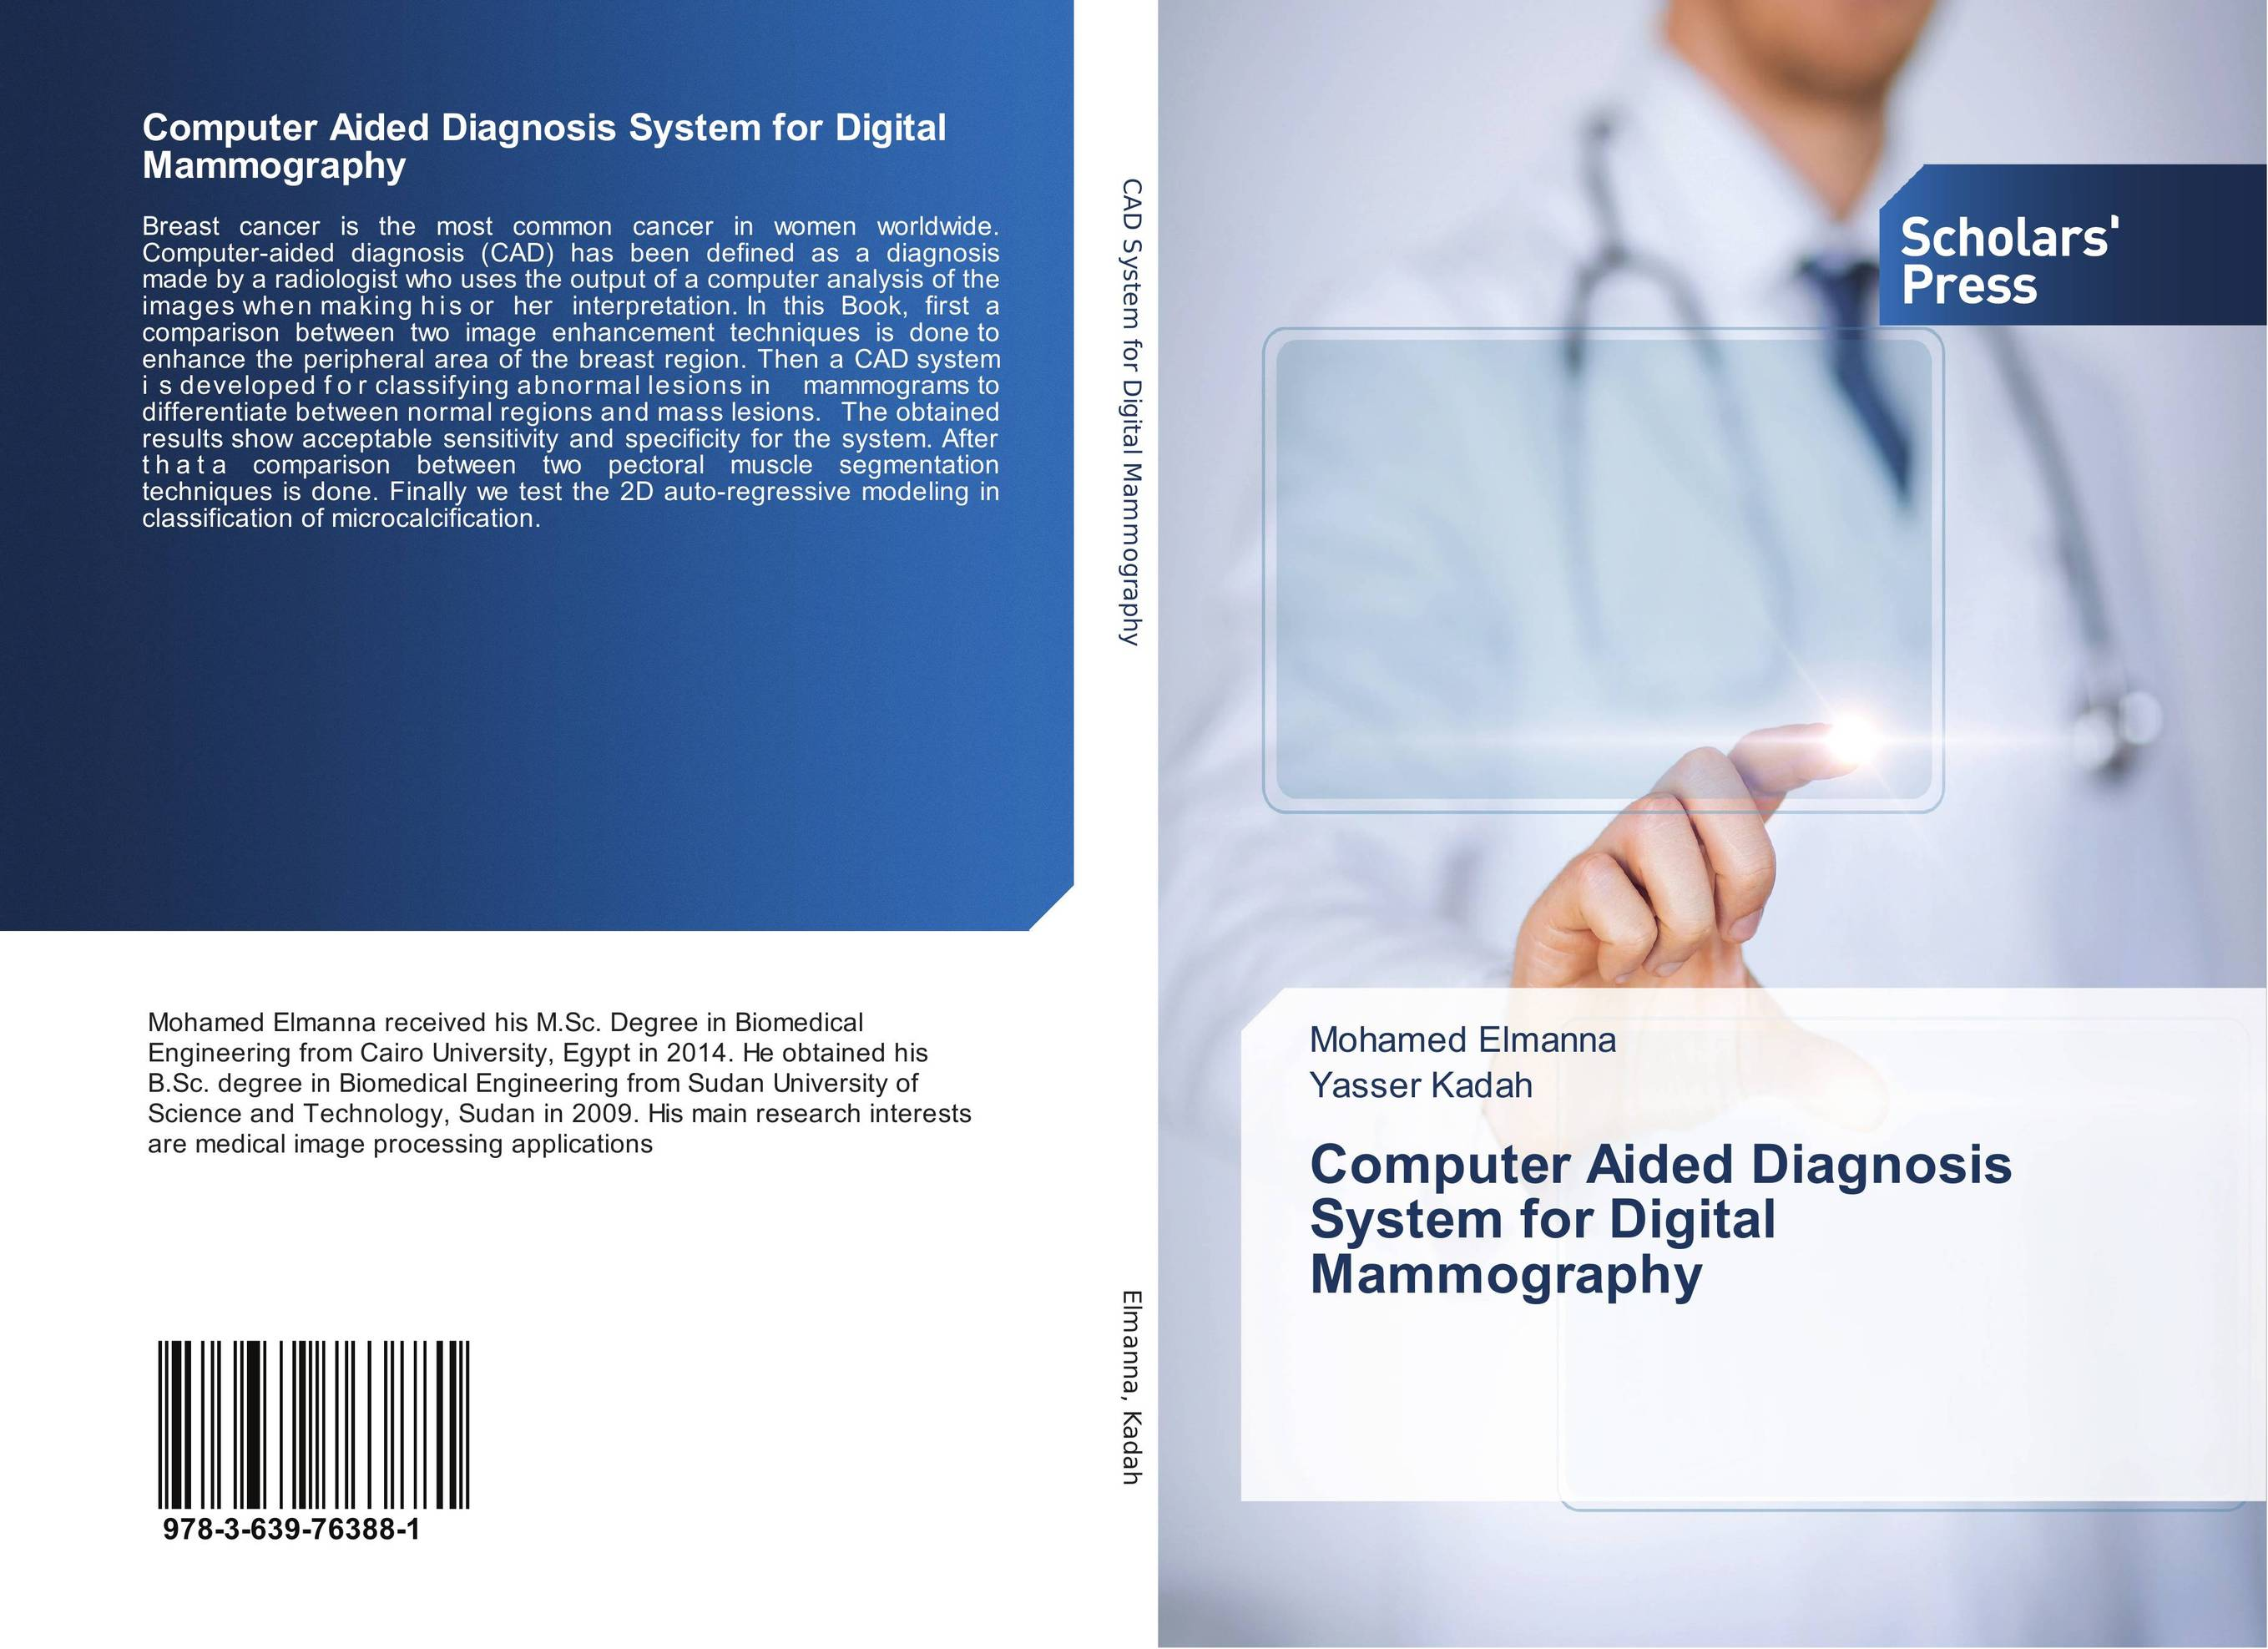 Computer Aided Diagnosis System for Digital Mammography